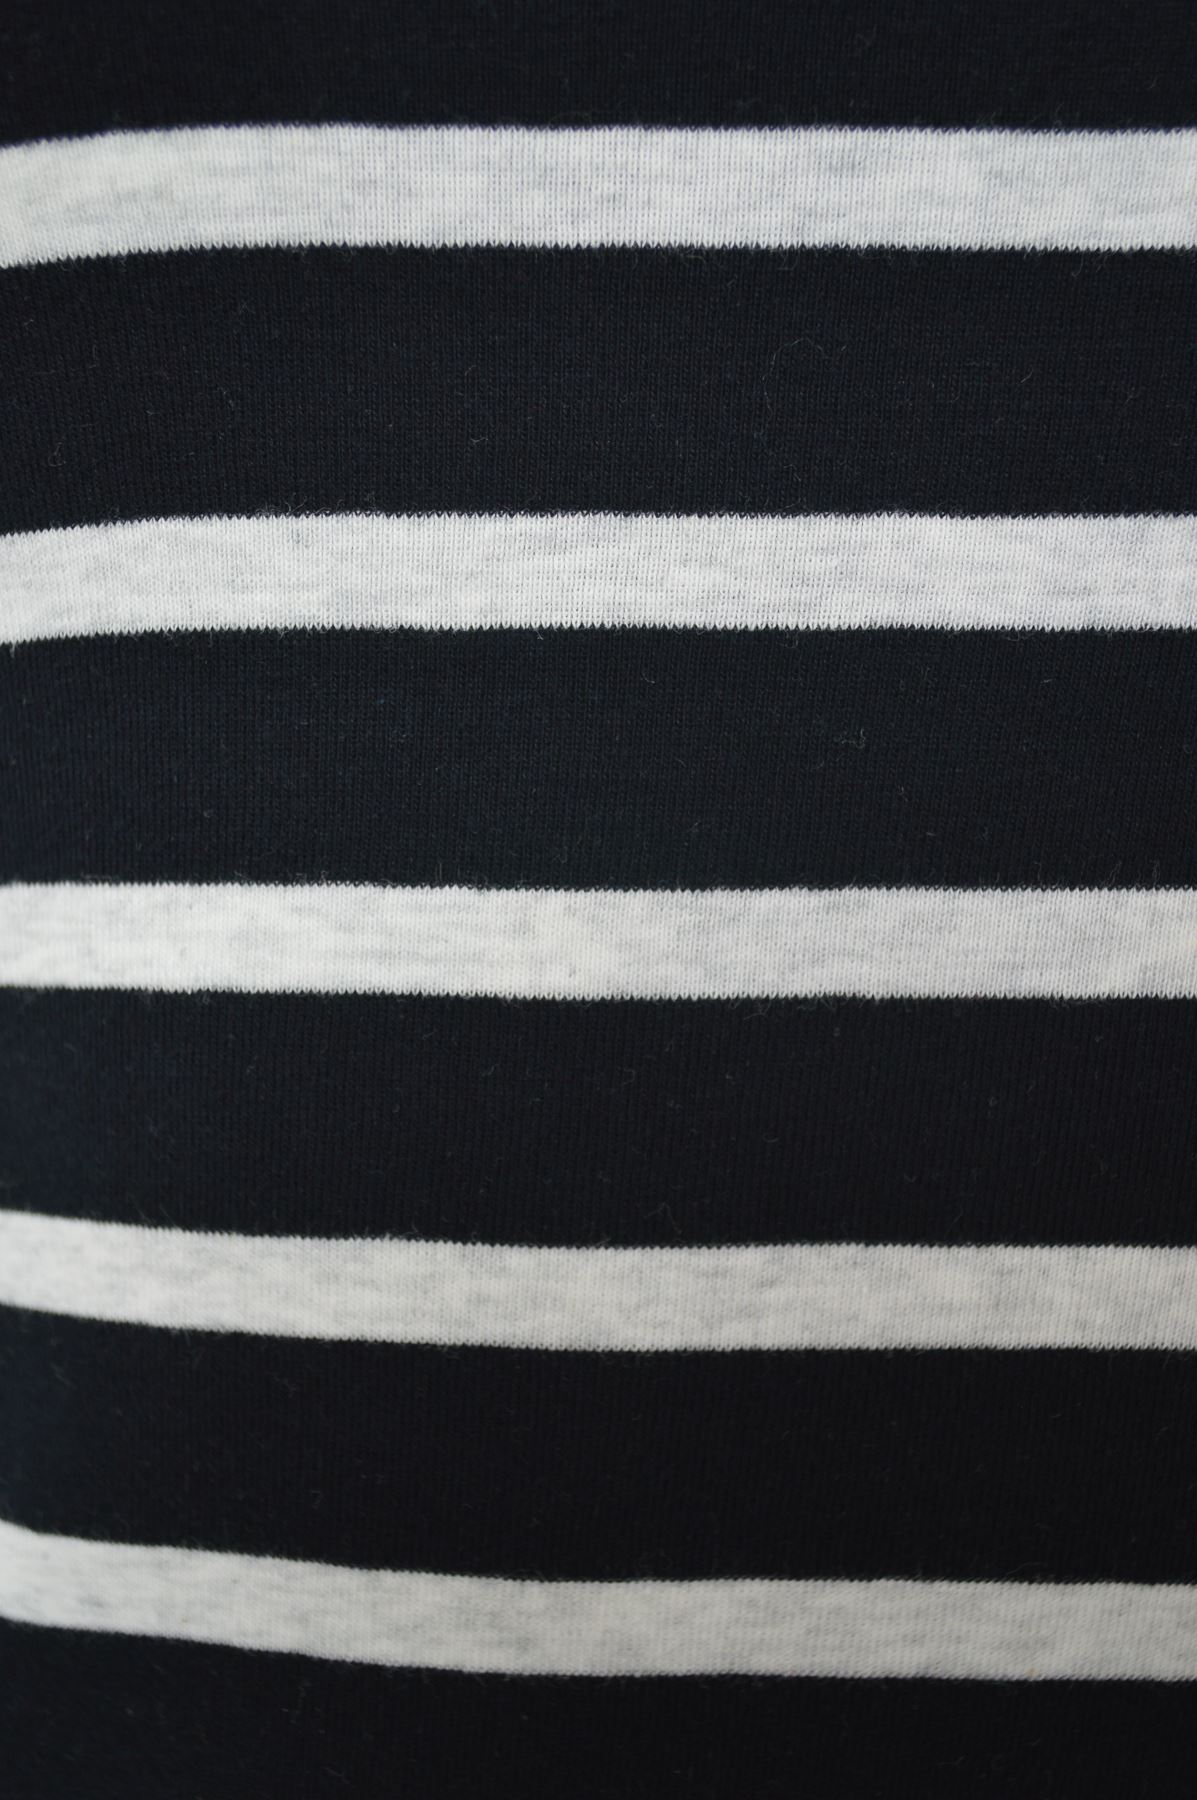 NEW-NEXT-Ladies-Black-or-Navy-White-Stripe-Long-Sleeve-T-Shirt-Top thumbnail 8